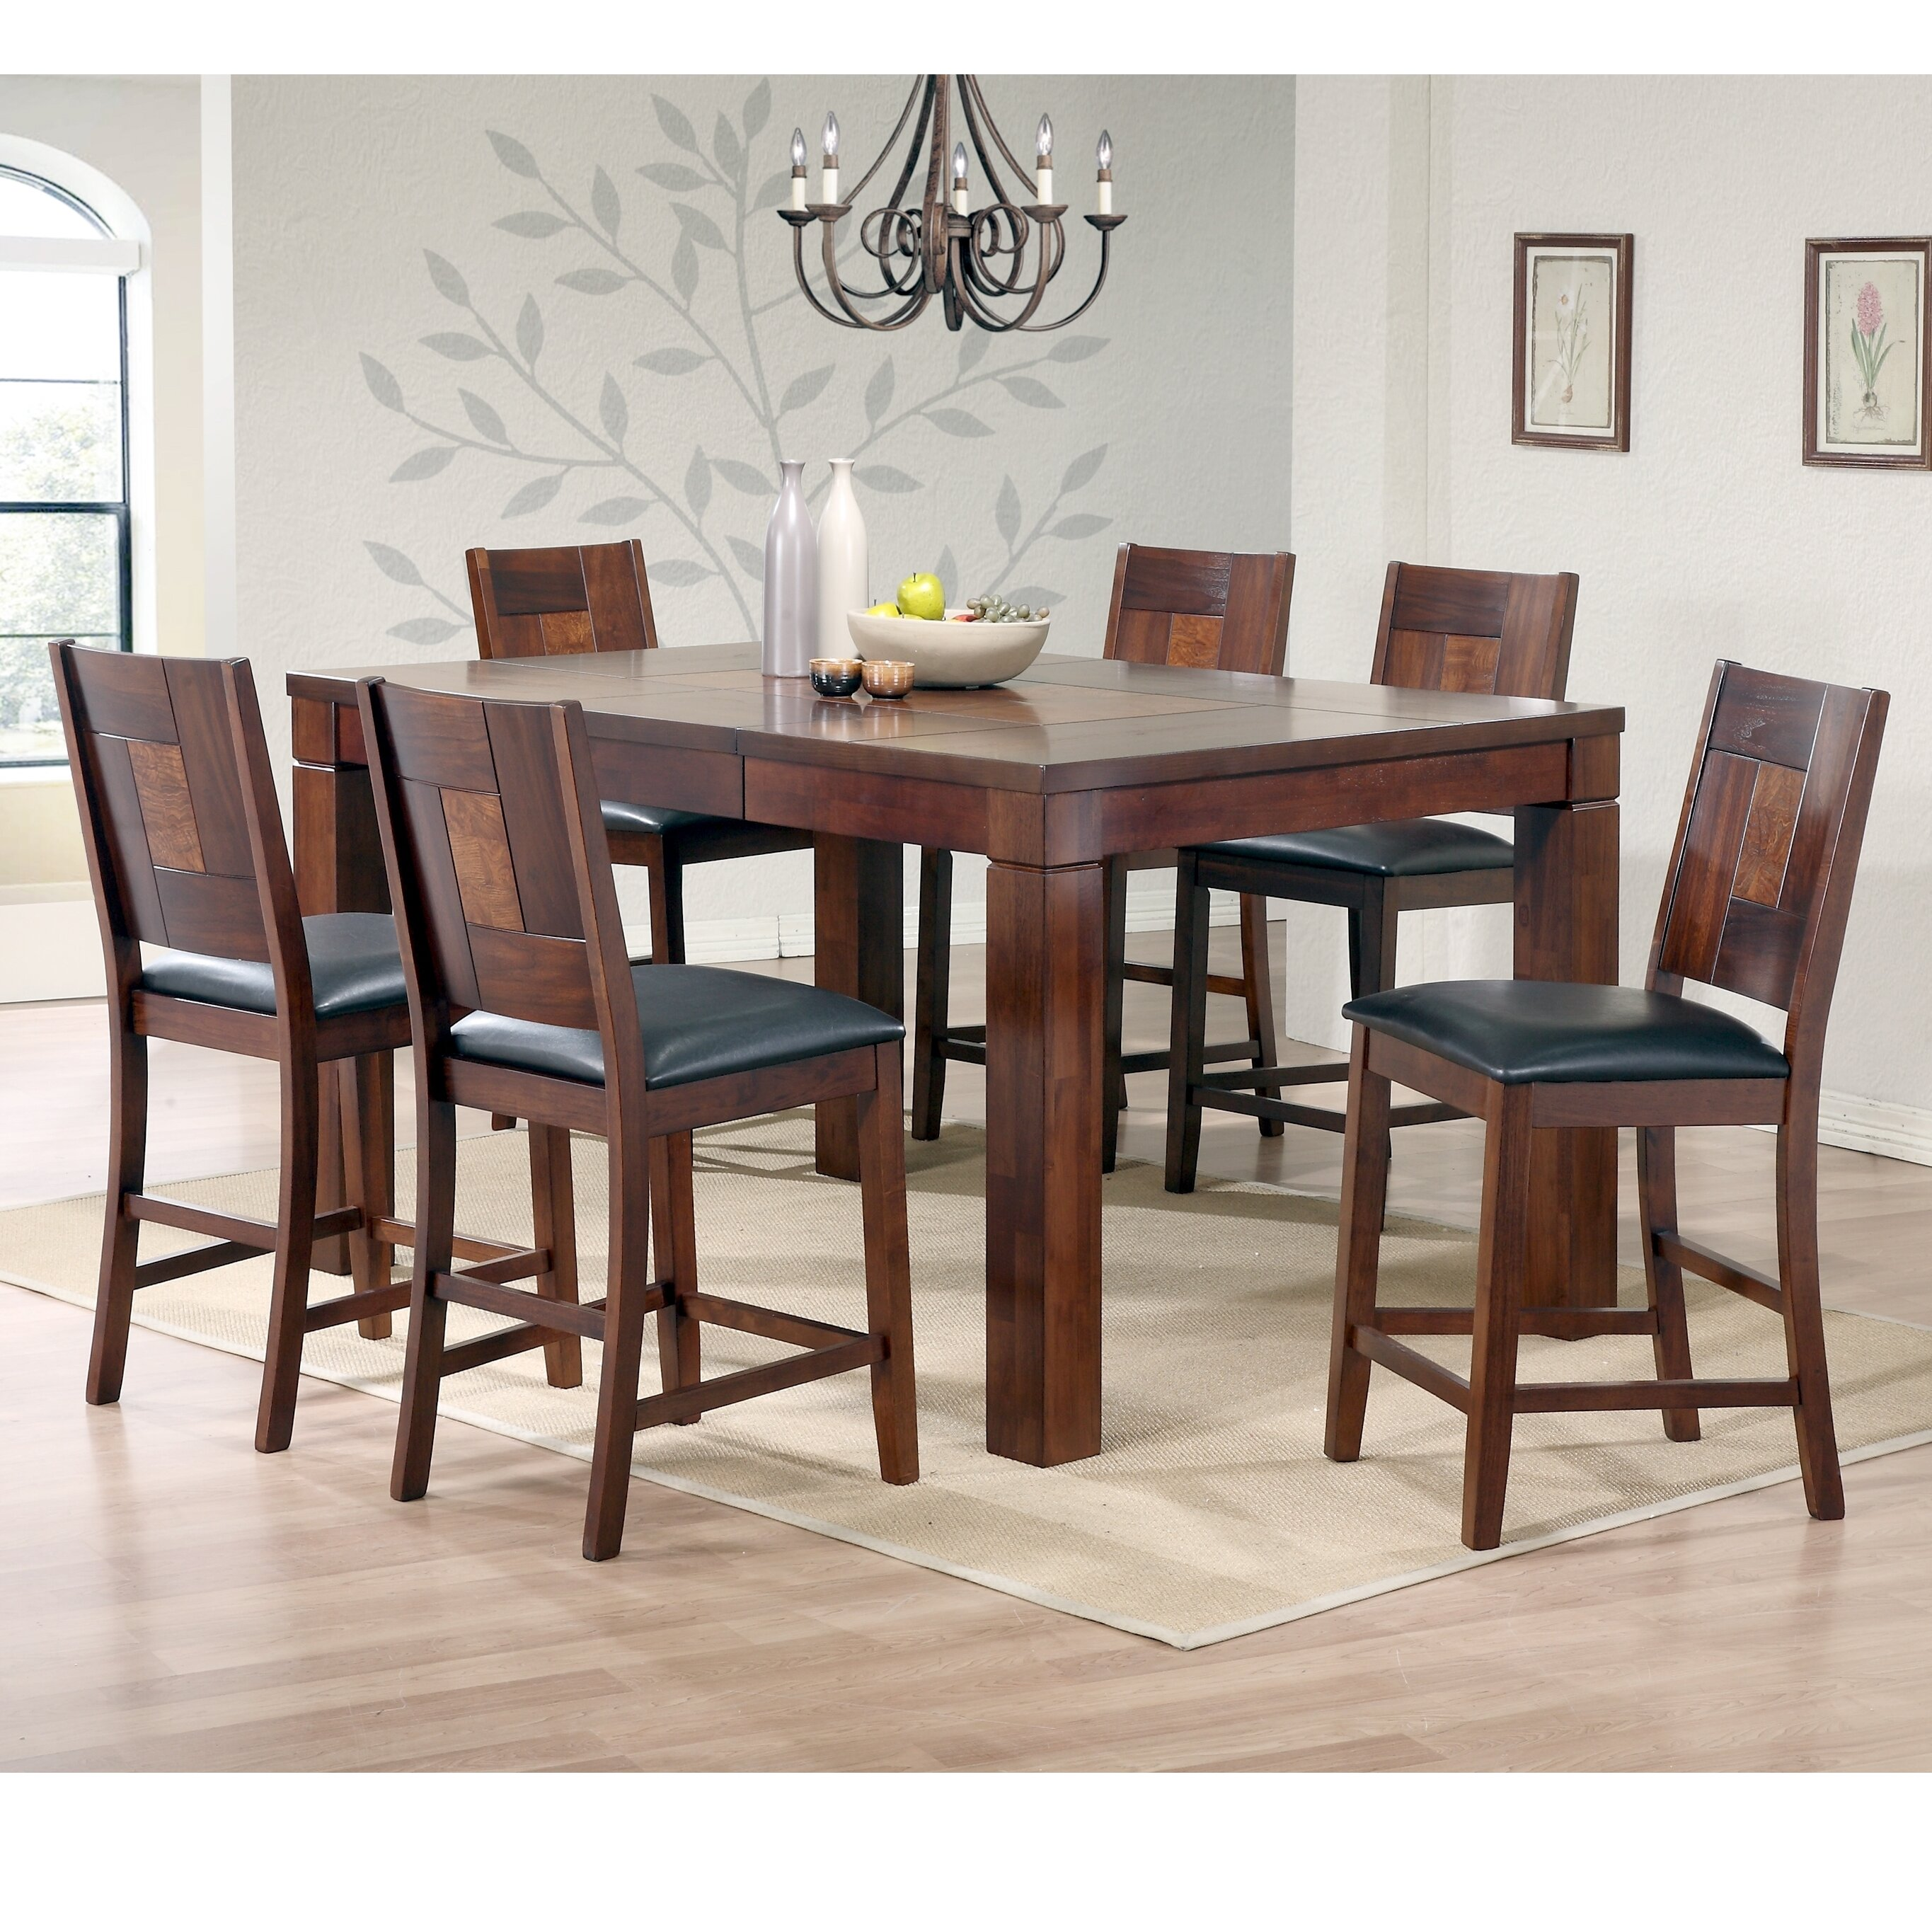 7 Piece Bar Counter Height Dining Sets You Ll Love In 2021 Wayfair